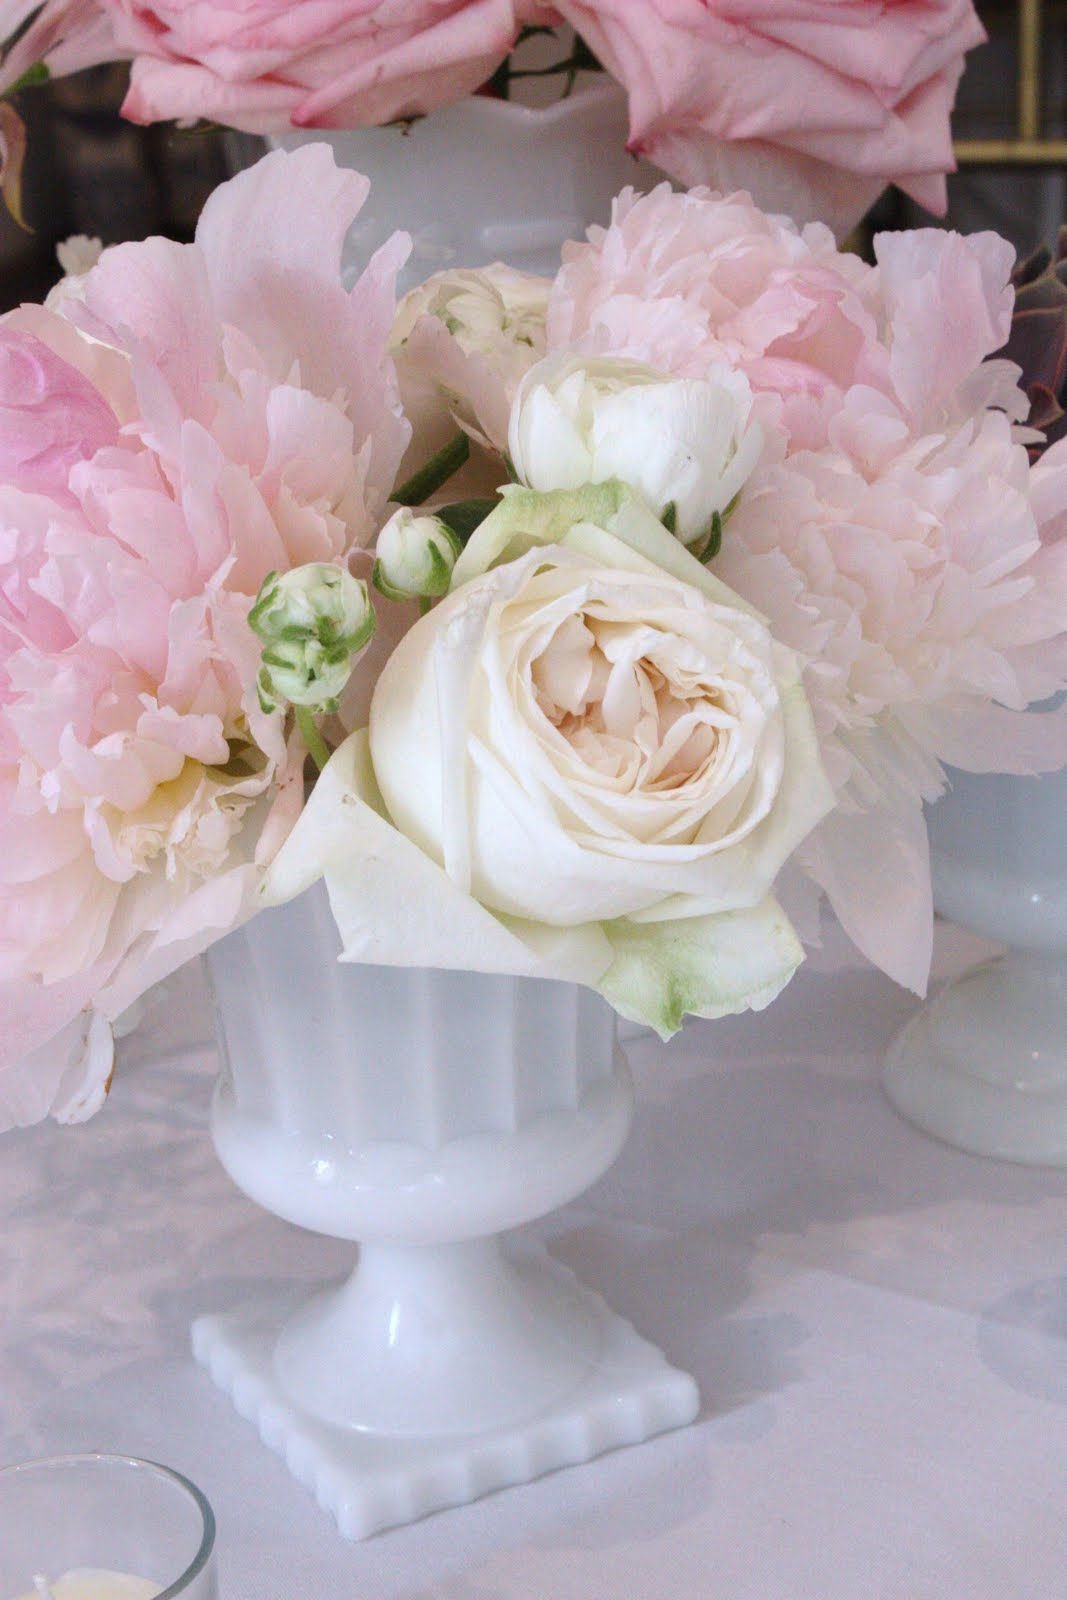 Milk glass centerpiece with cream roses and pink